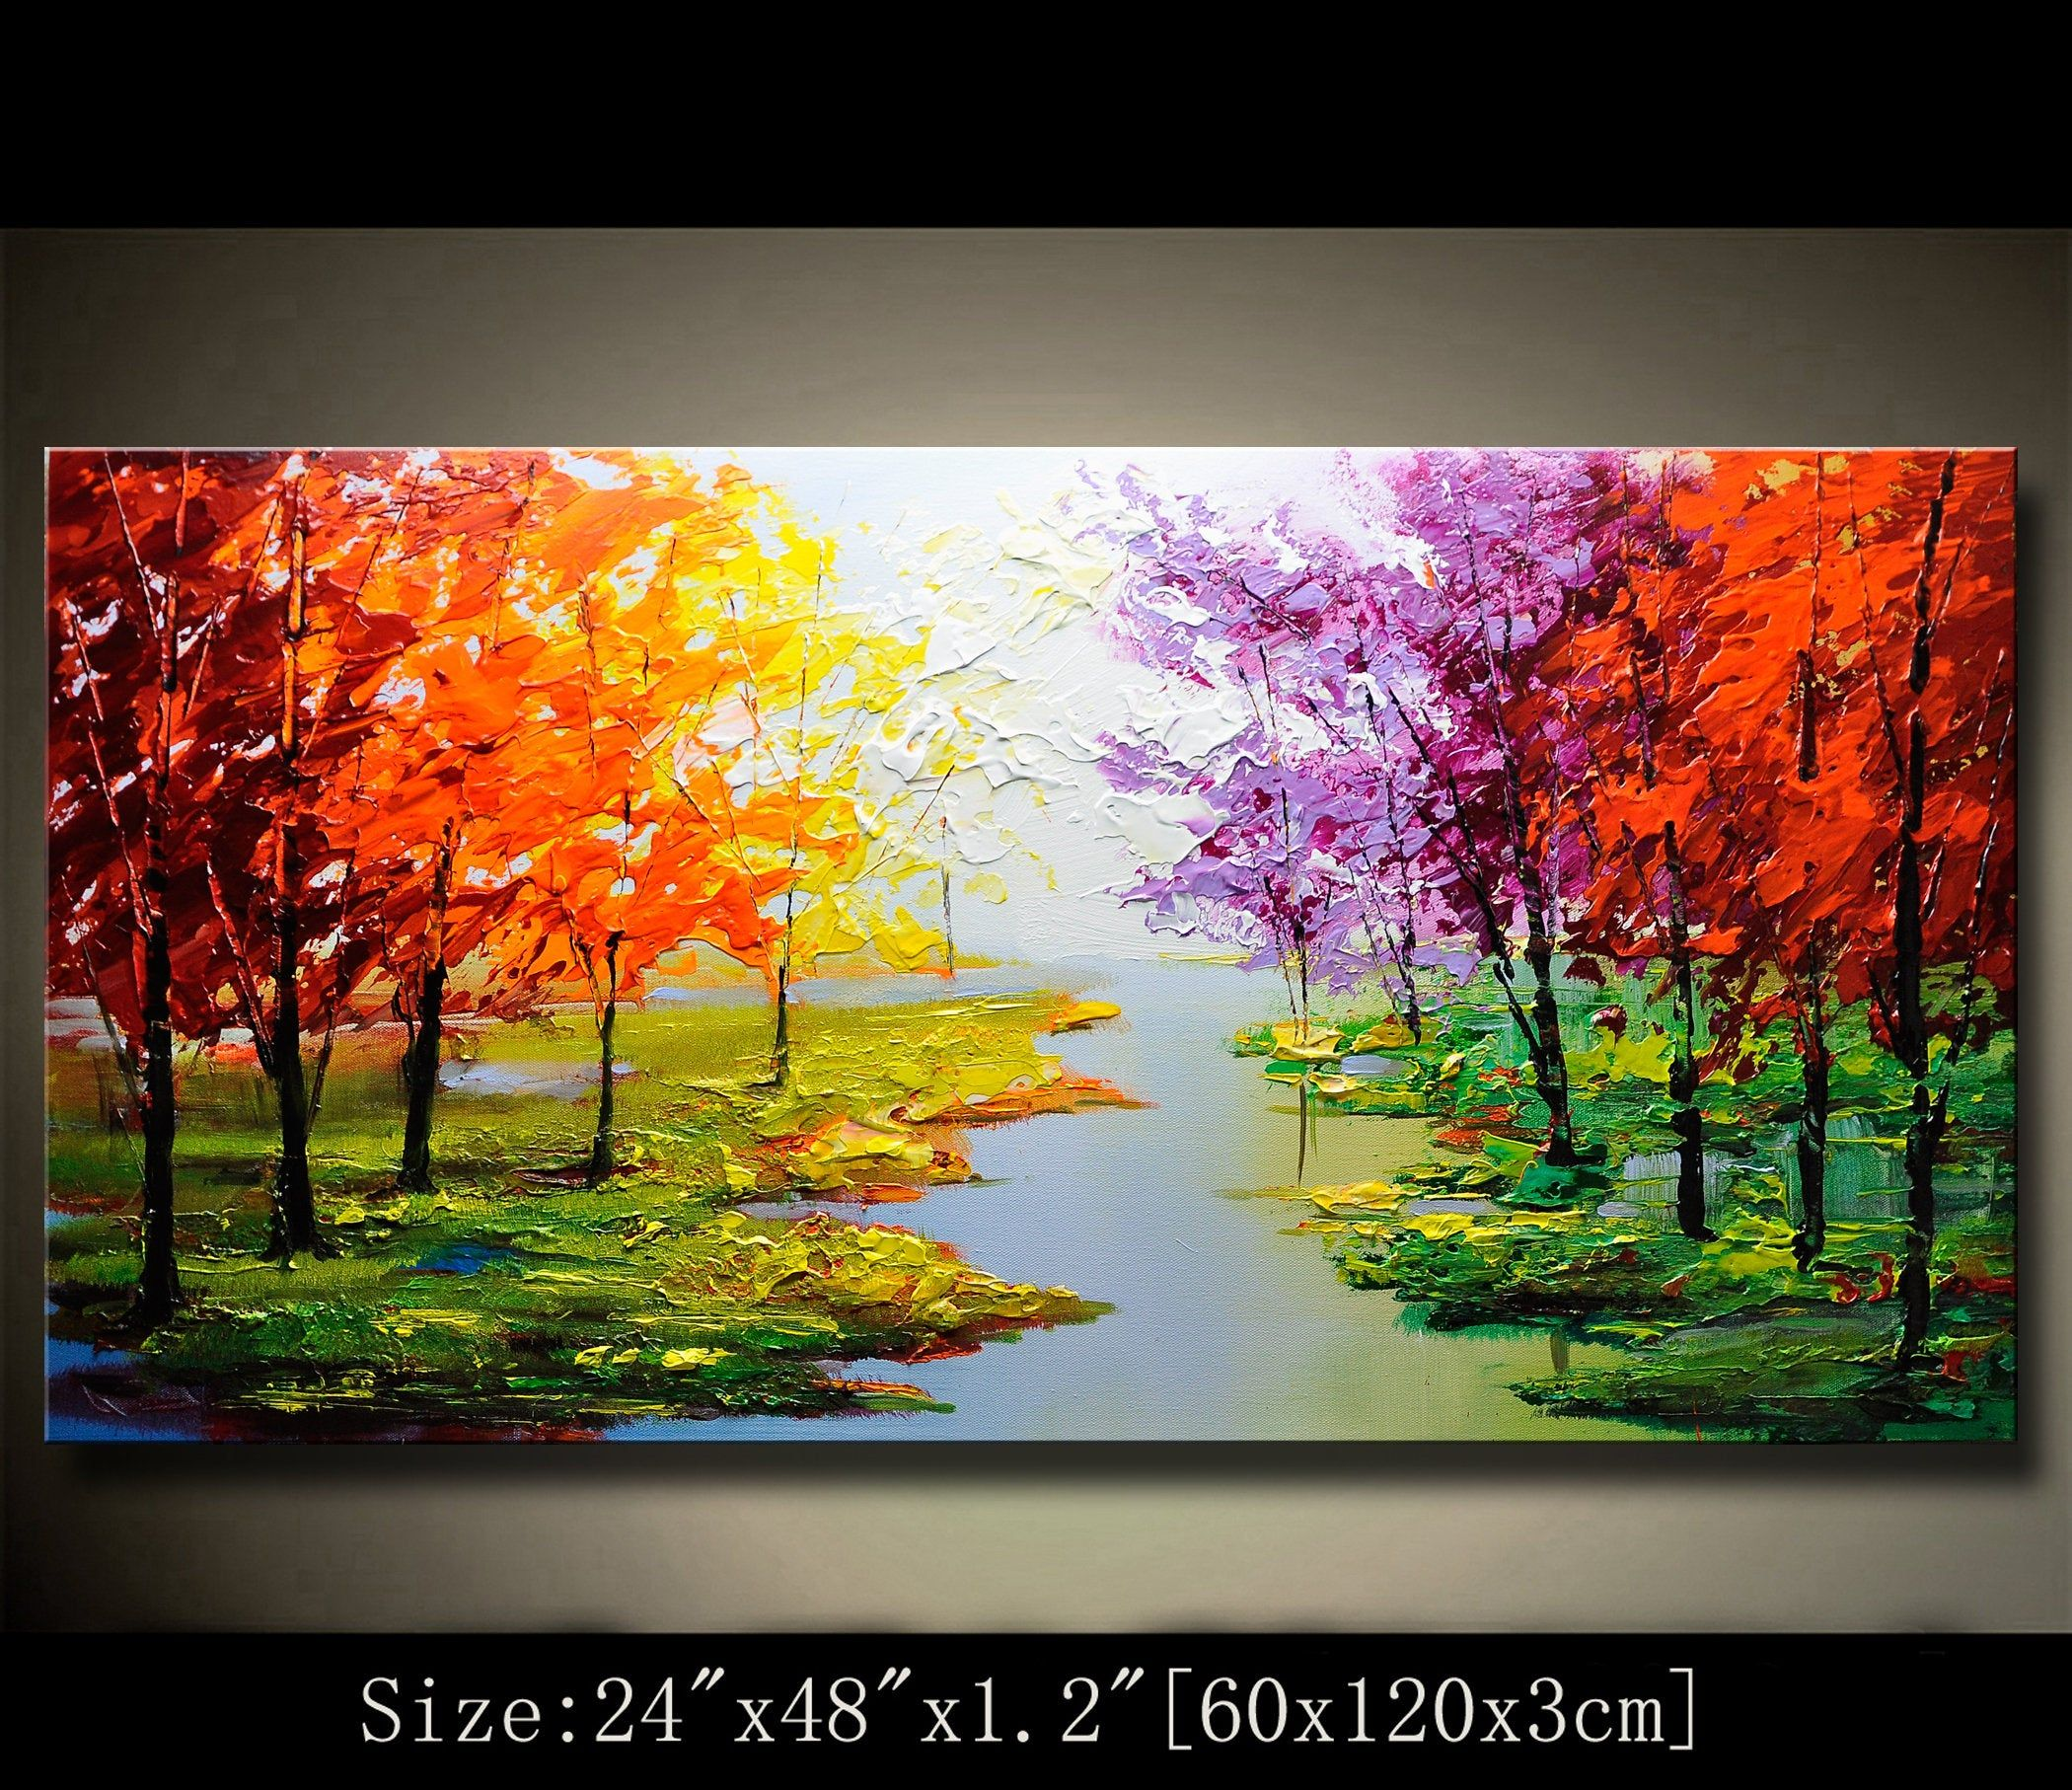 Contemporary Wall Art Modern Textured Painting Colorful Landscape Modern Palette Knife Painting Painting On Canvas Chen 20321 In 2020 Modern Landscape Painting Texture Painting On Canvas Abstract Wall Painting